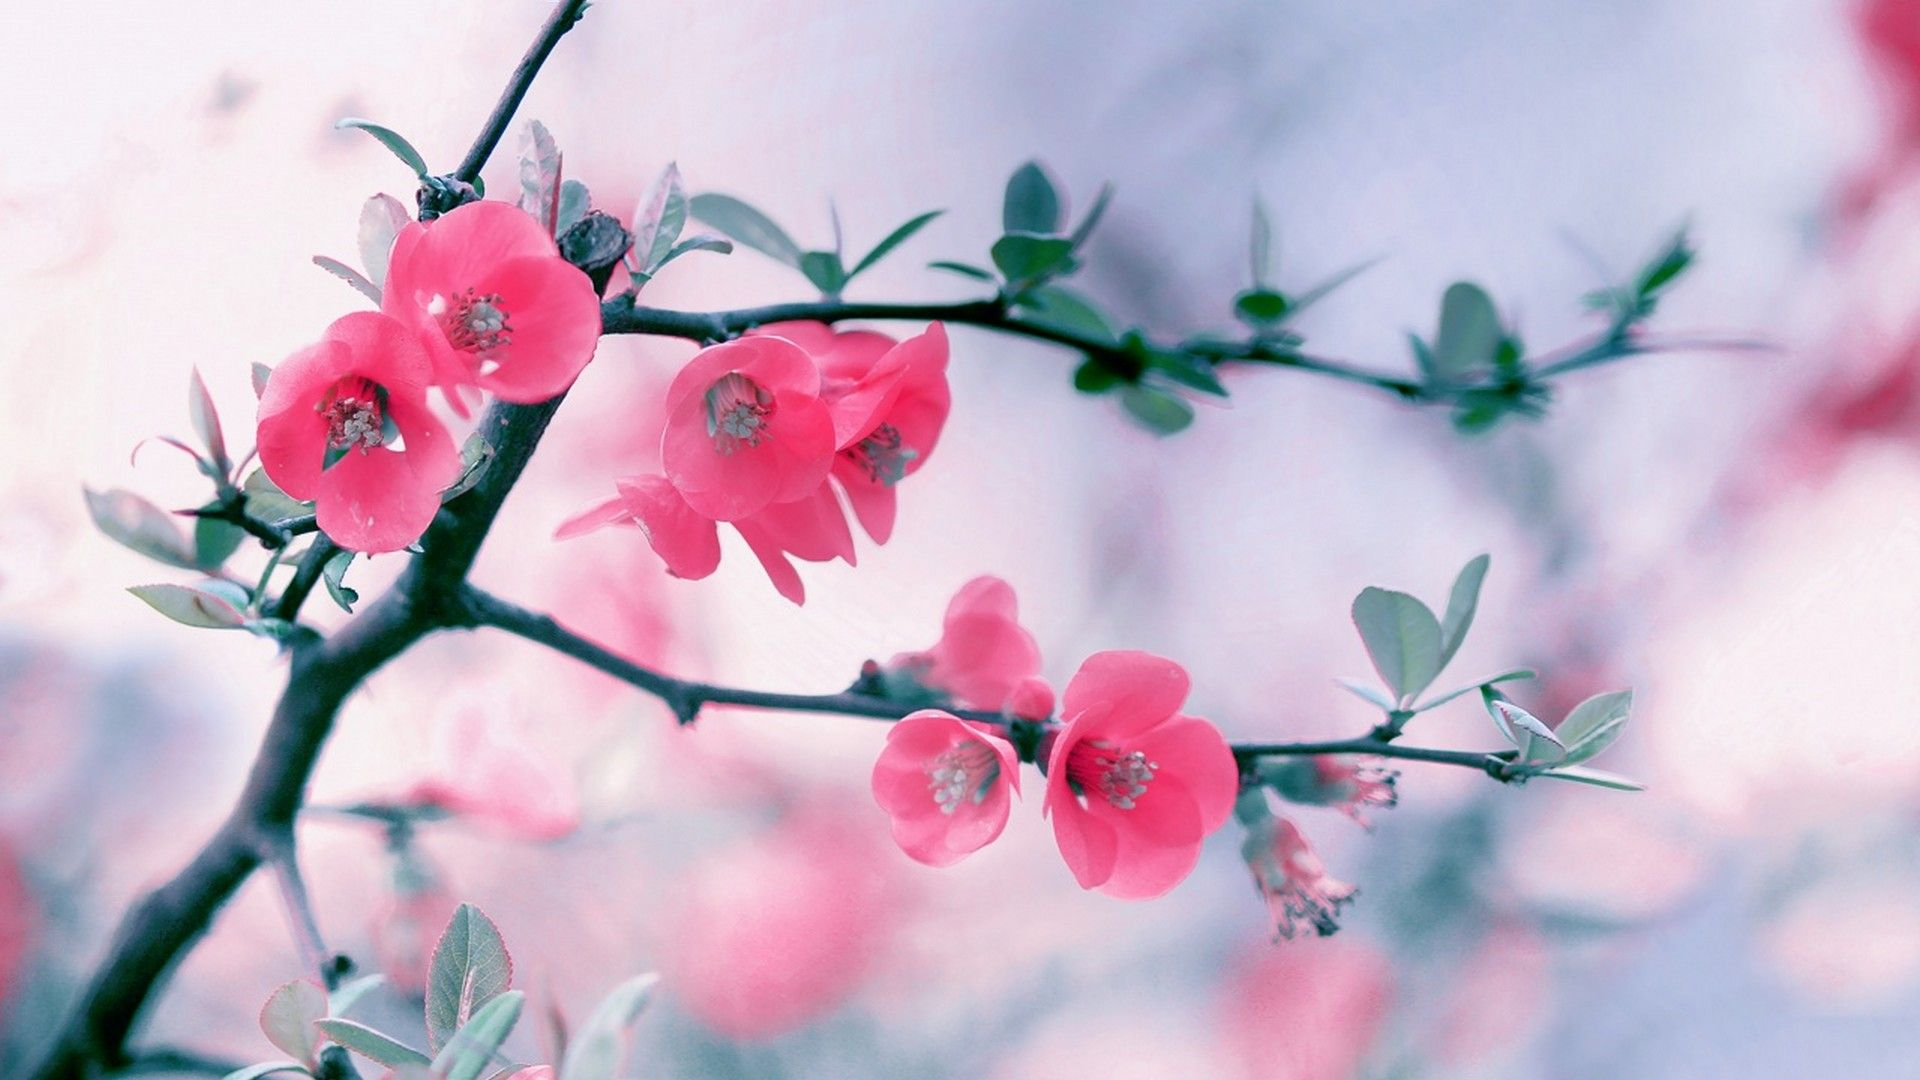 Cute Spring Wallpaper HD Spring wallpaper Flower backgrounds 1920x1080